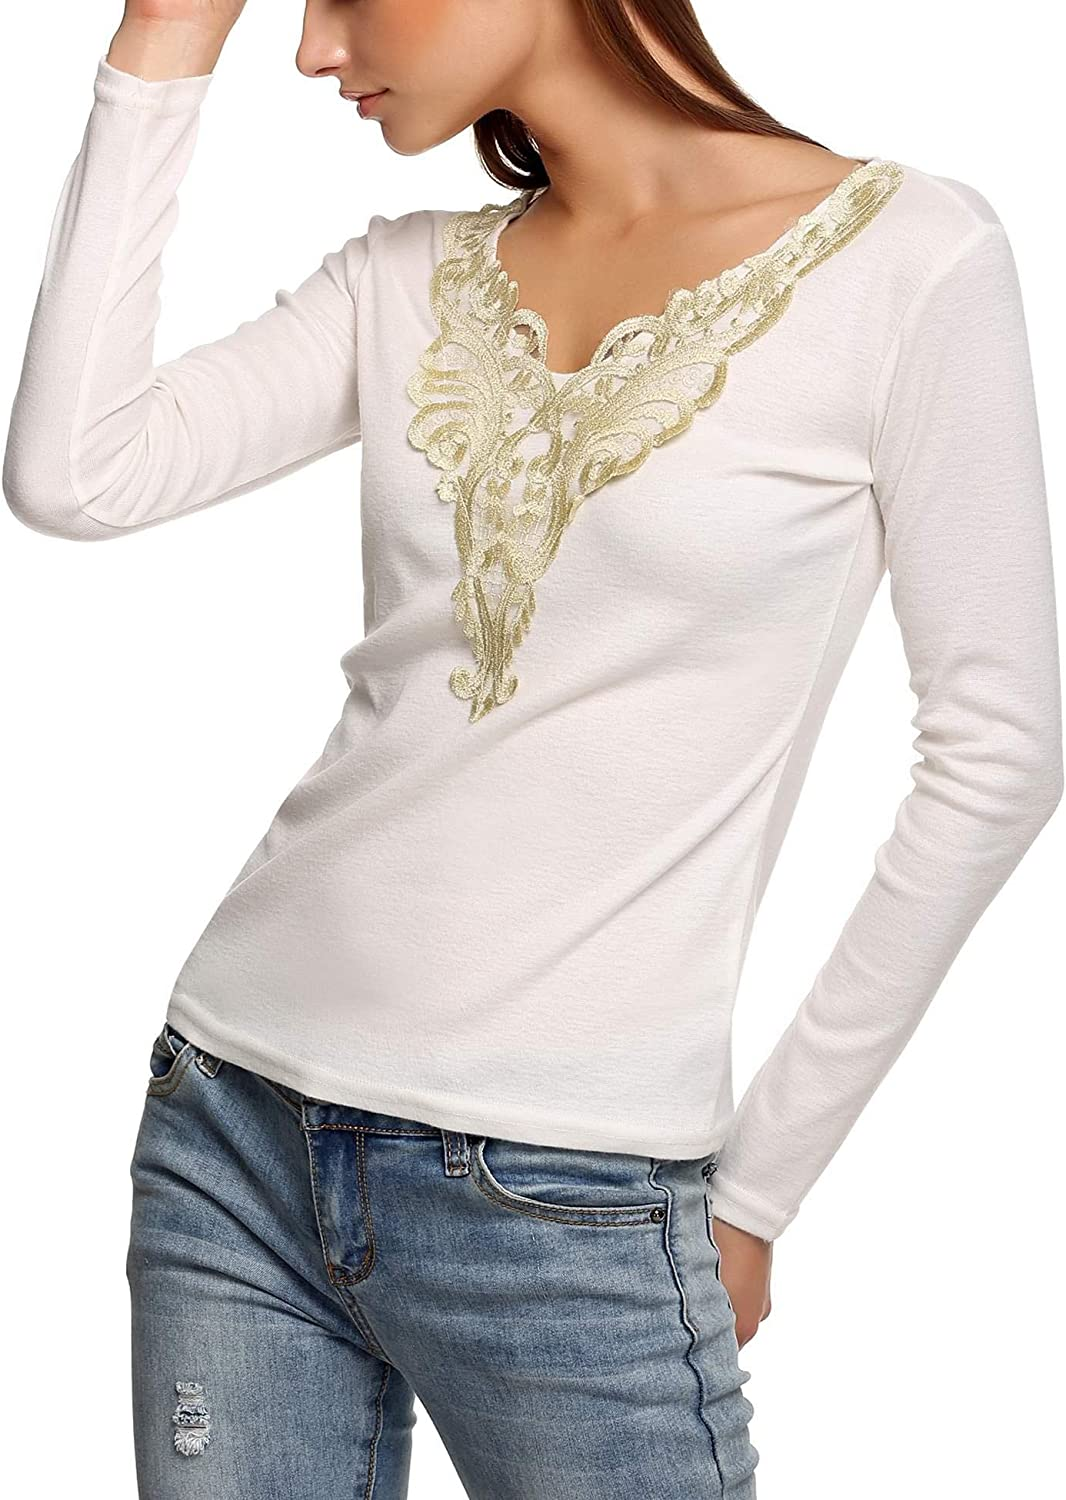 kionme Women Elegant Casual Cold Shoulder Hollow Out Lace-Up Solid Pullover Blouse Top Blouses